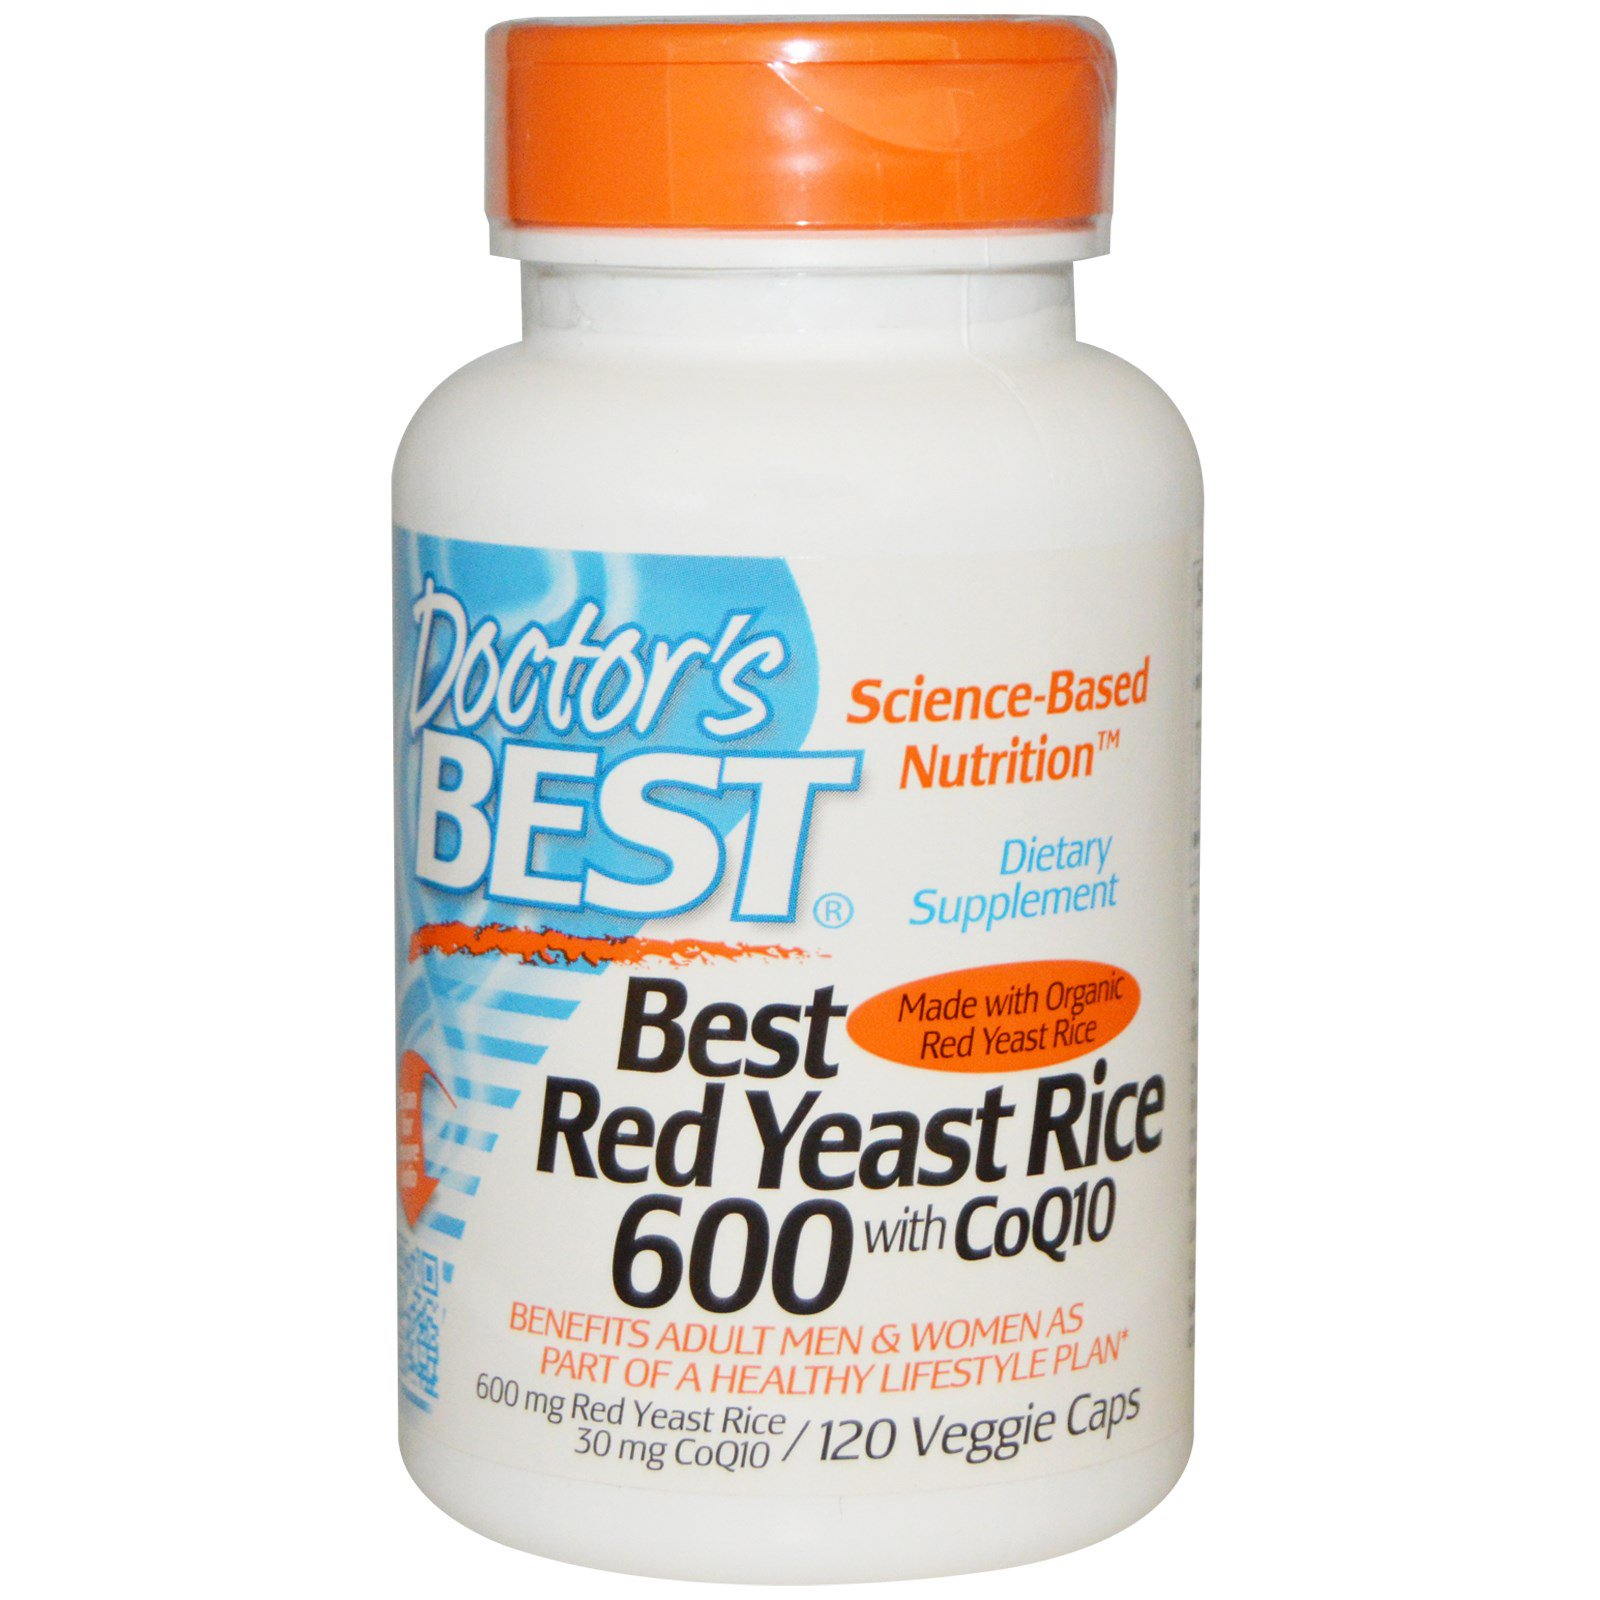 doctor s best best red yeast rice 600 with coq10 120 veggie caps